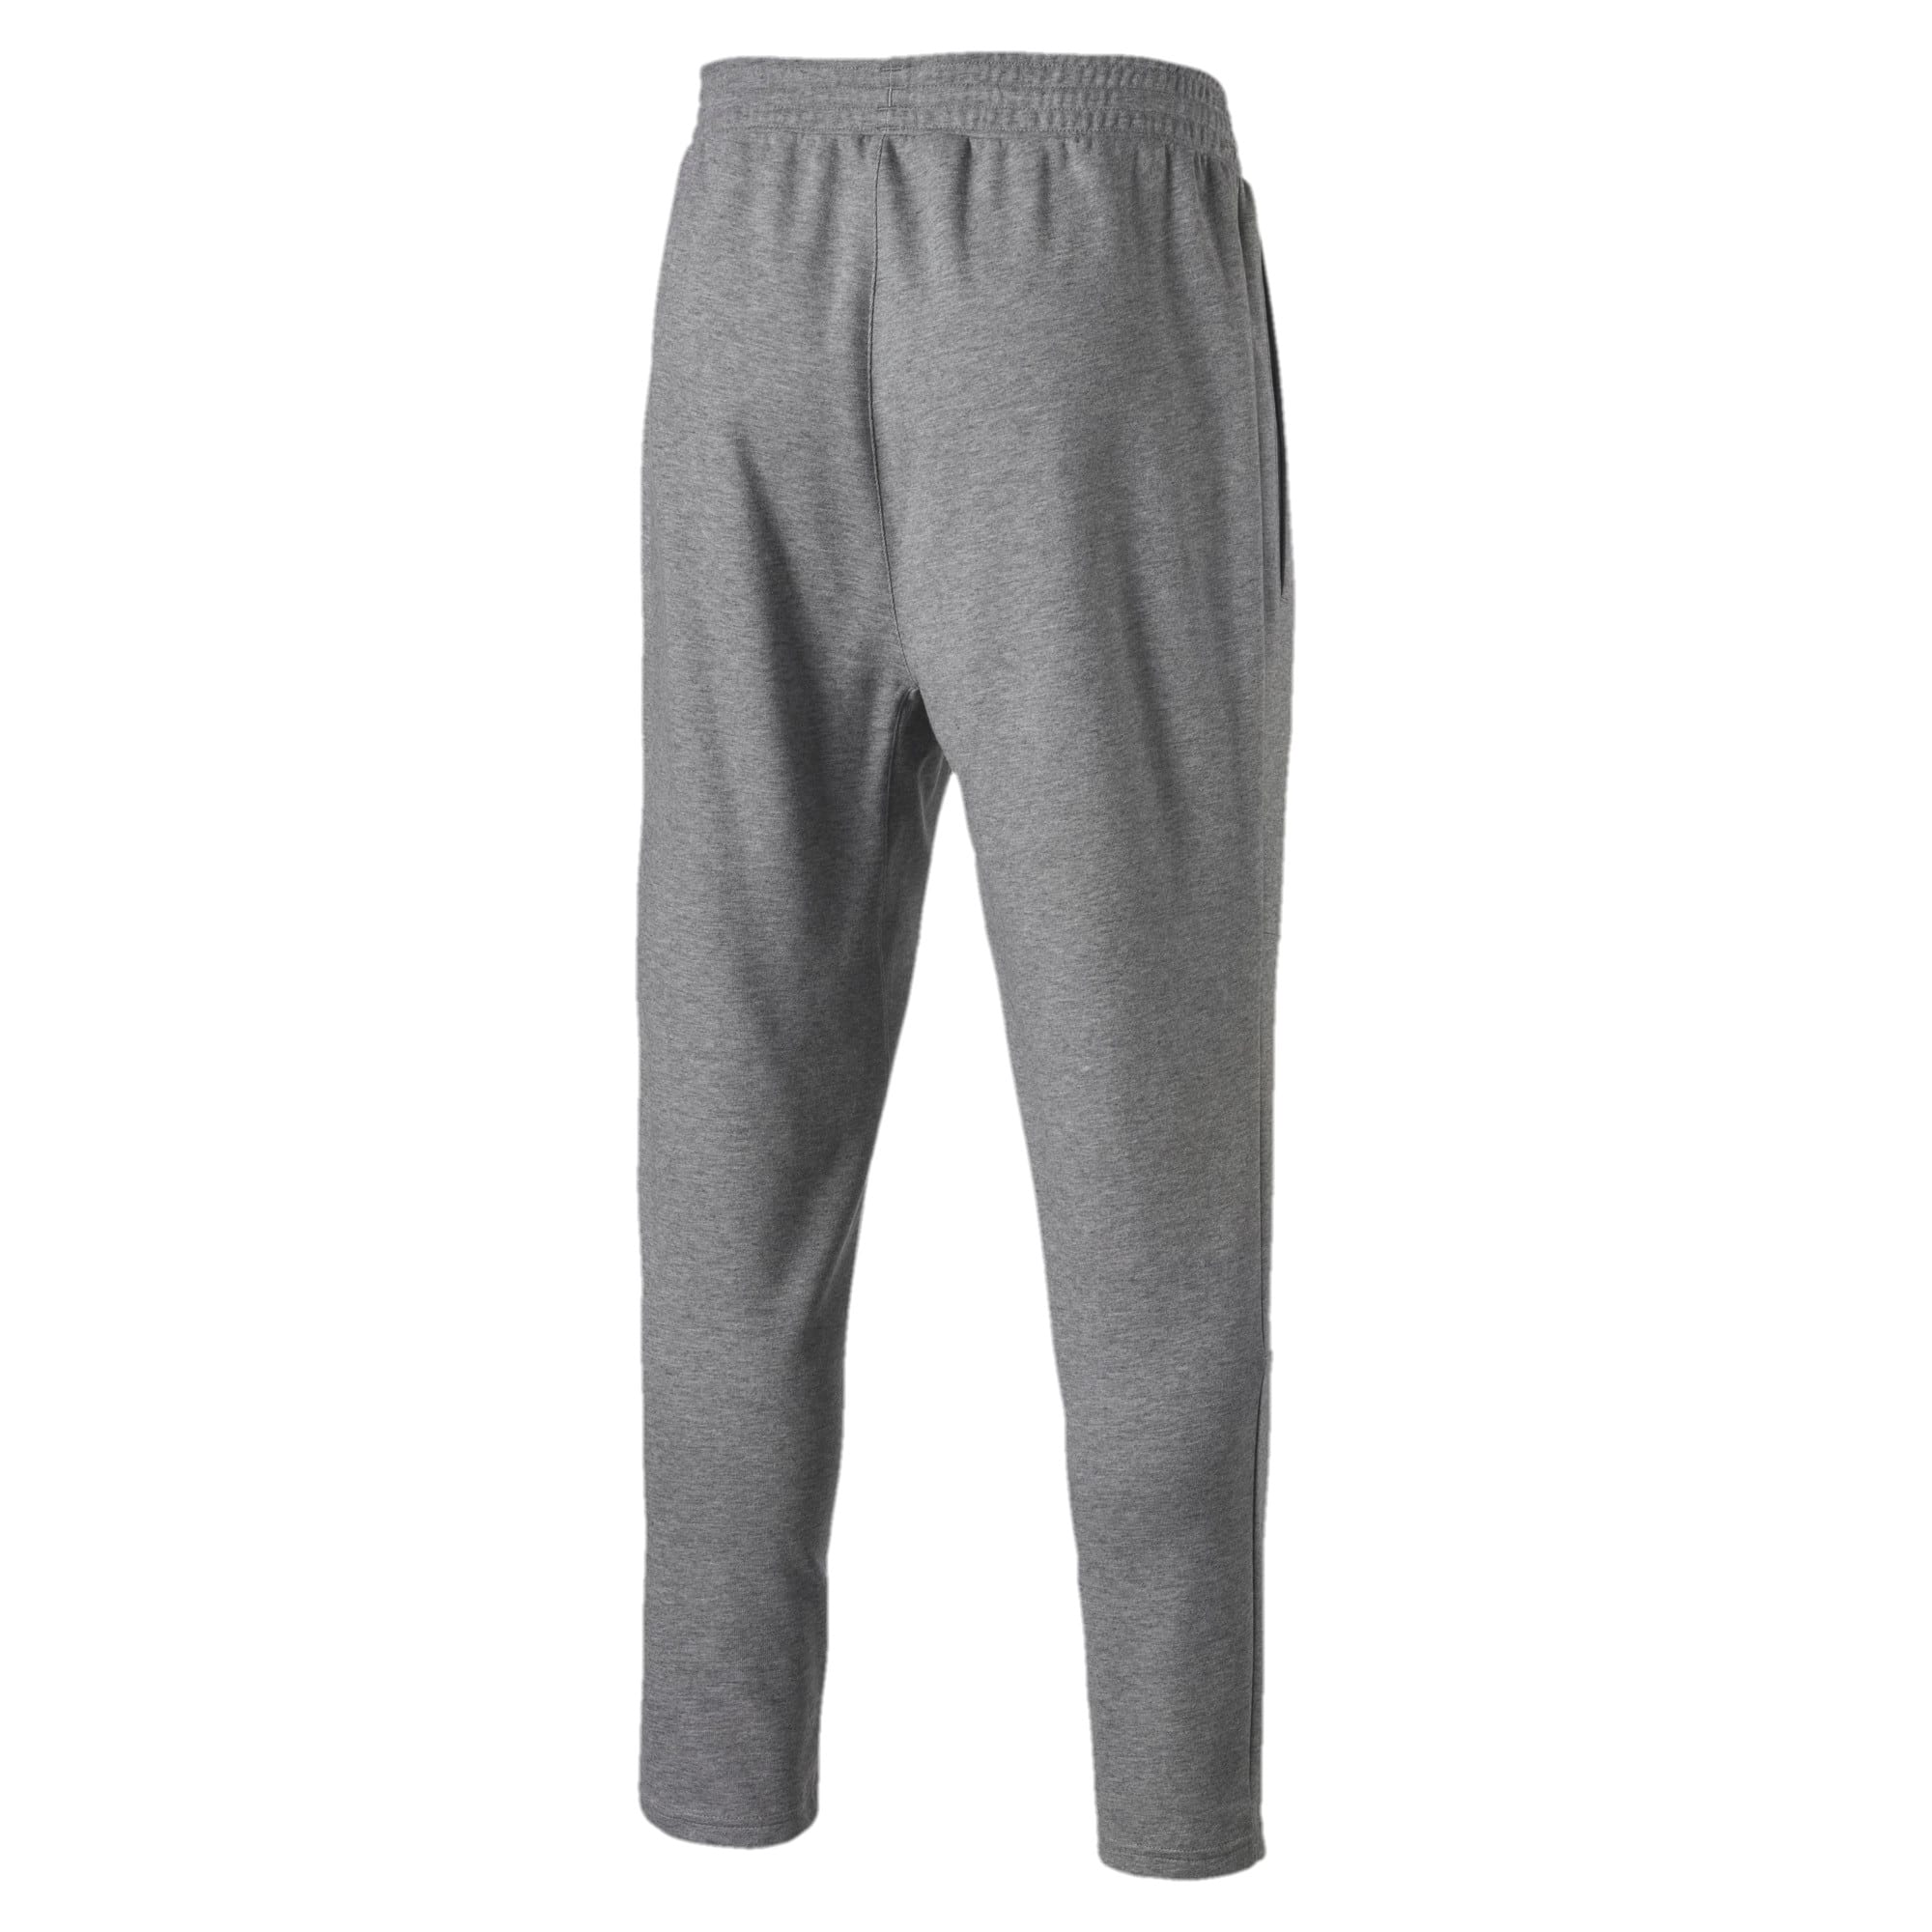 Thumbnail 5 of Knitted Men's Training Pants, Charcoal Gray Heather, medium-IND